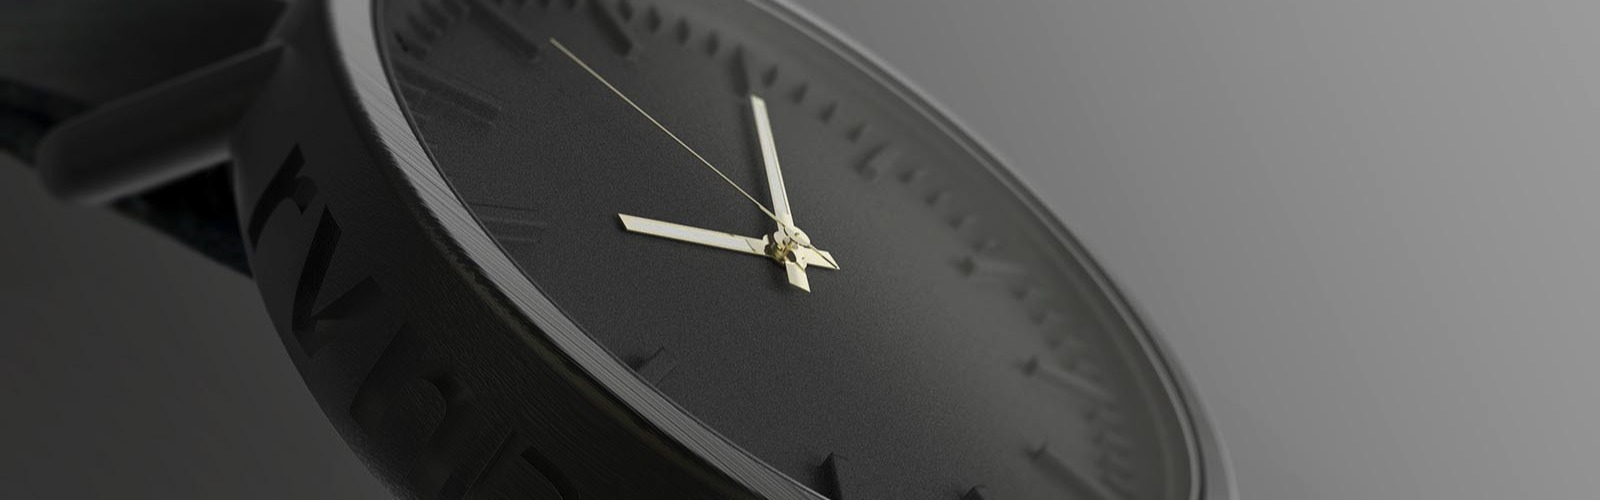 3D-Printed-Watches1